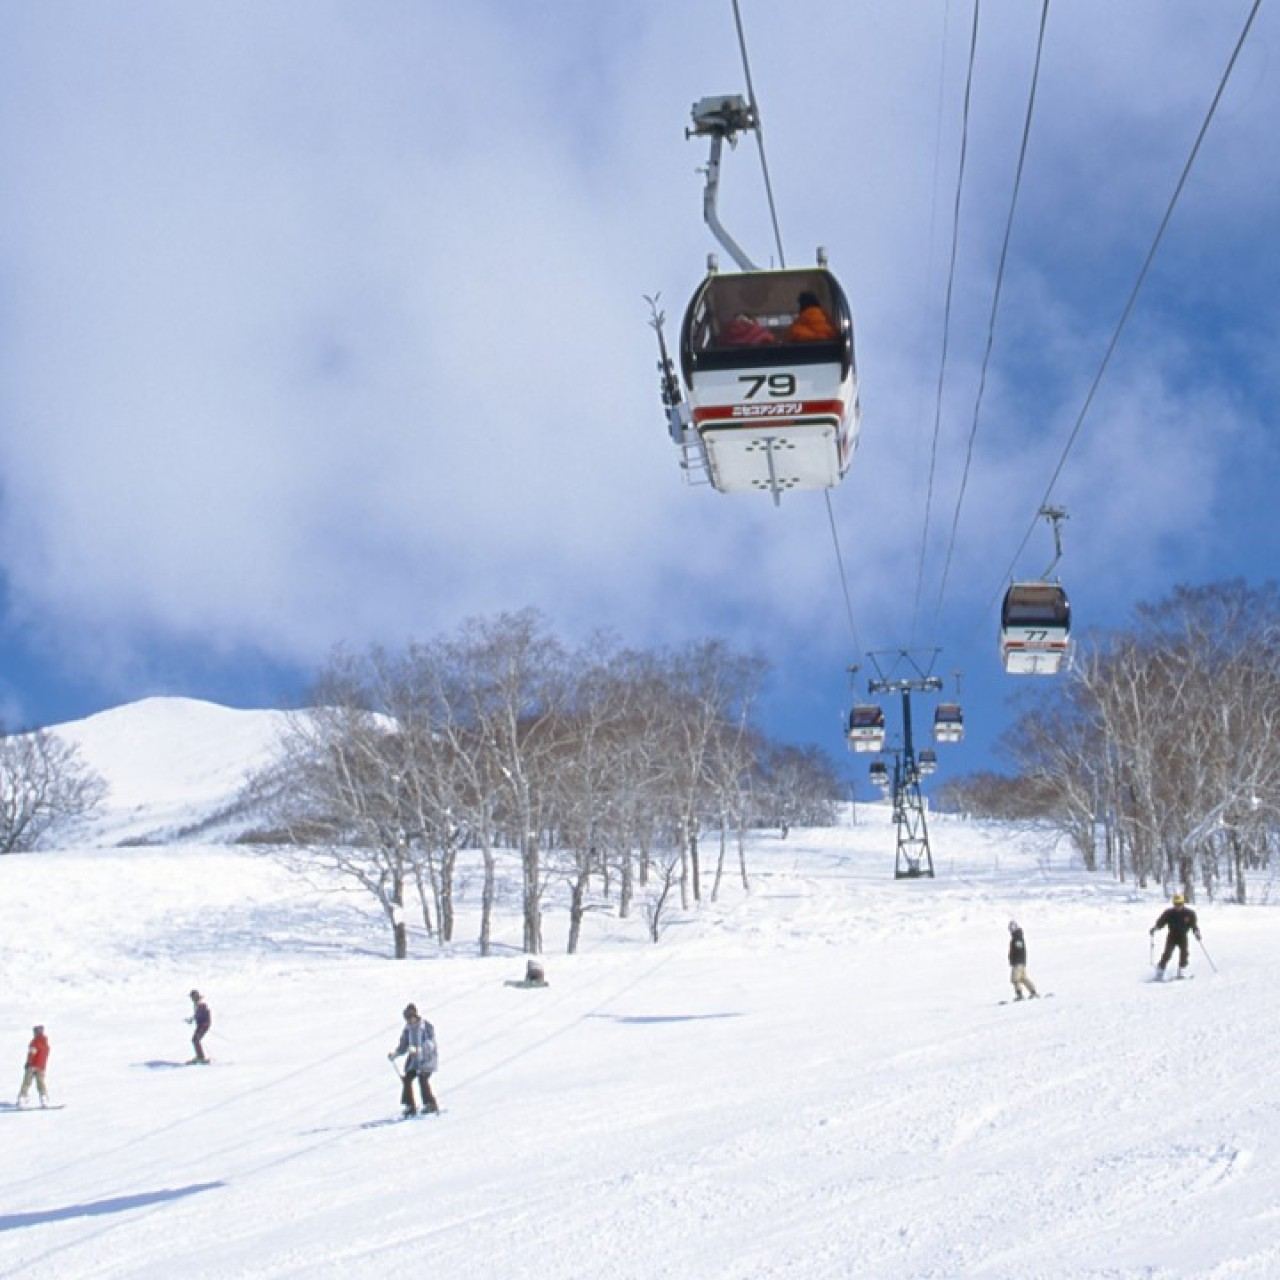 Why most of the 1 2 million skiers in China avoid local ski